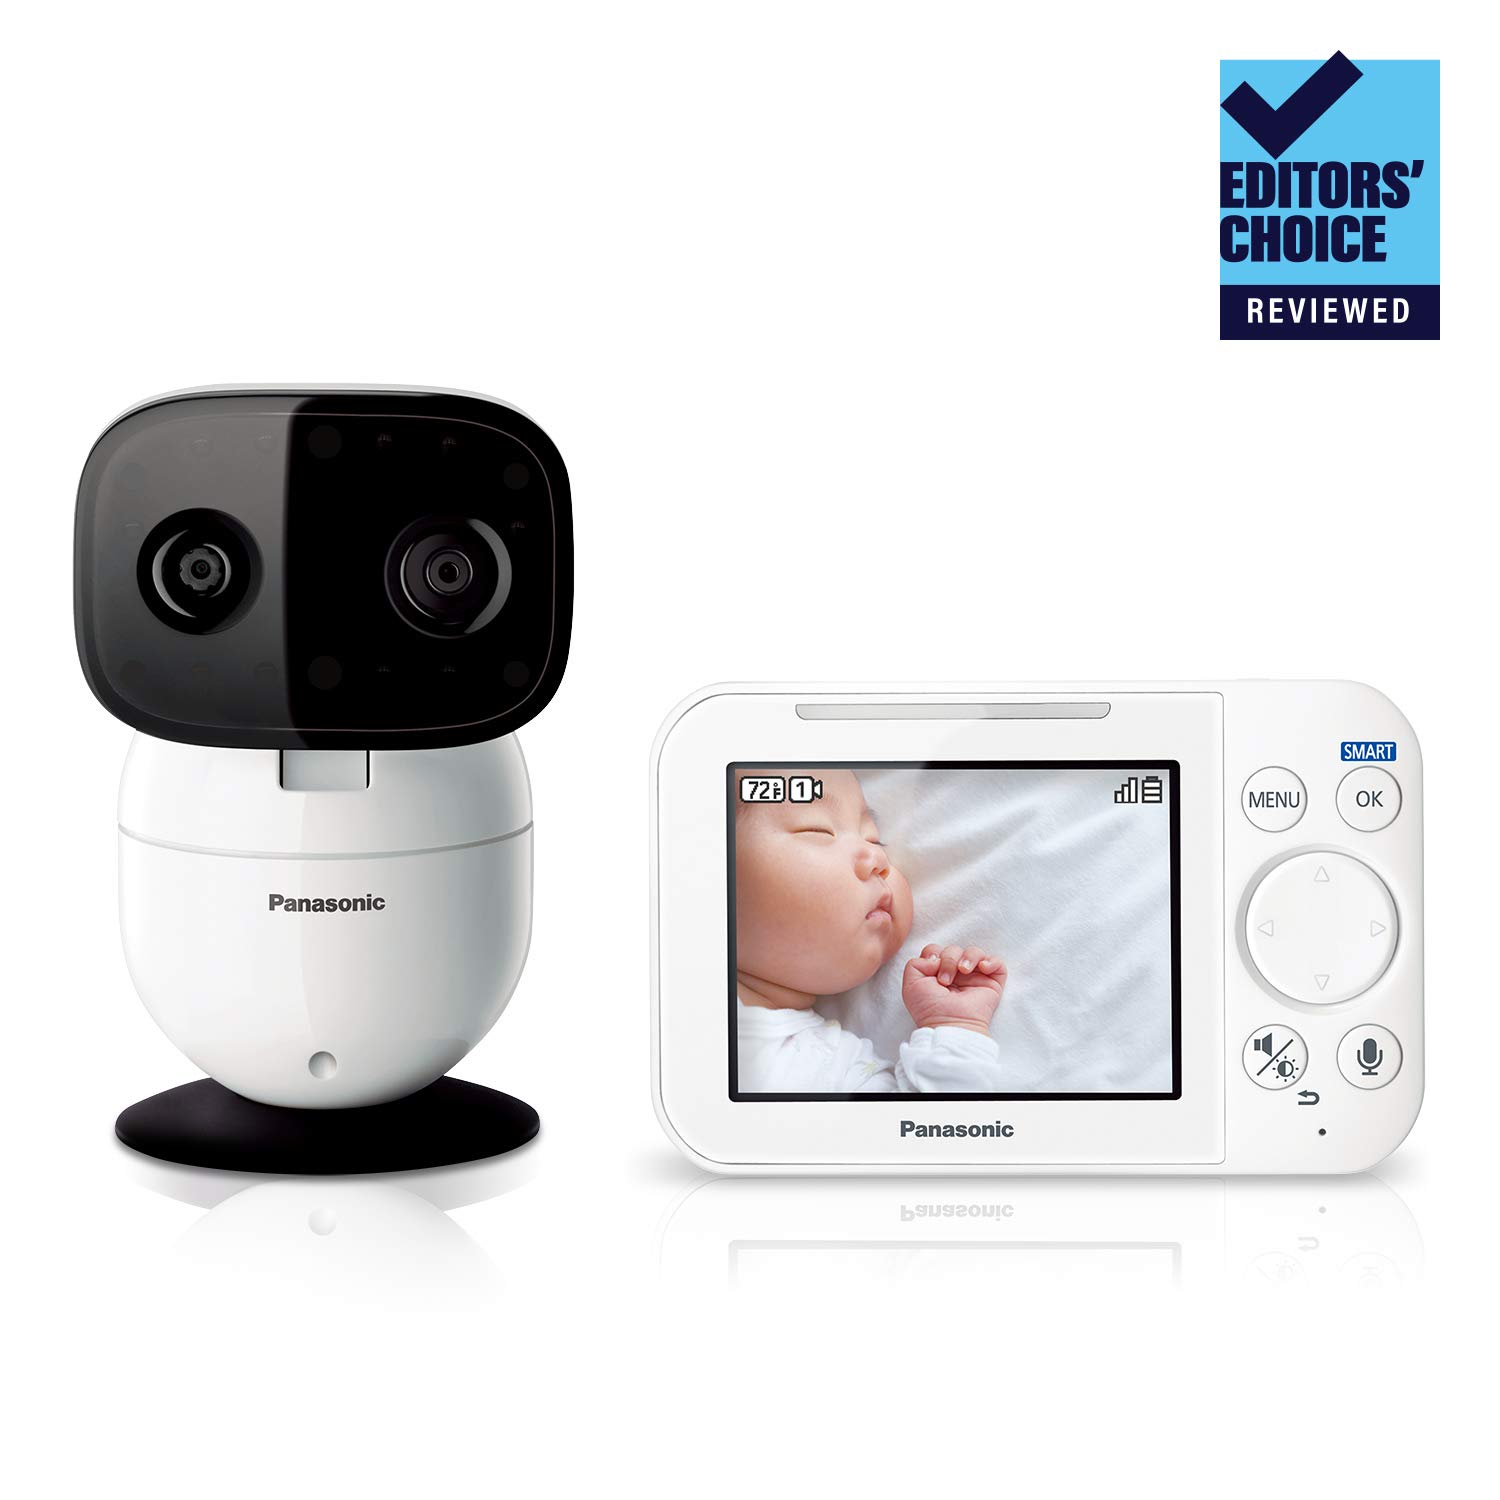 Panasonic Video Baby Monitor with Remote Pan/Tilt/Zoom, Extra Long Audio/Video Range, 2 Way Talk and Lullaby or White Noises - 1 Camera KX-HN4101W (White) Updated 2019 Version